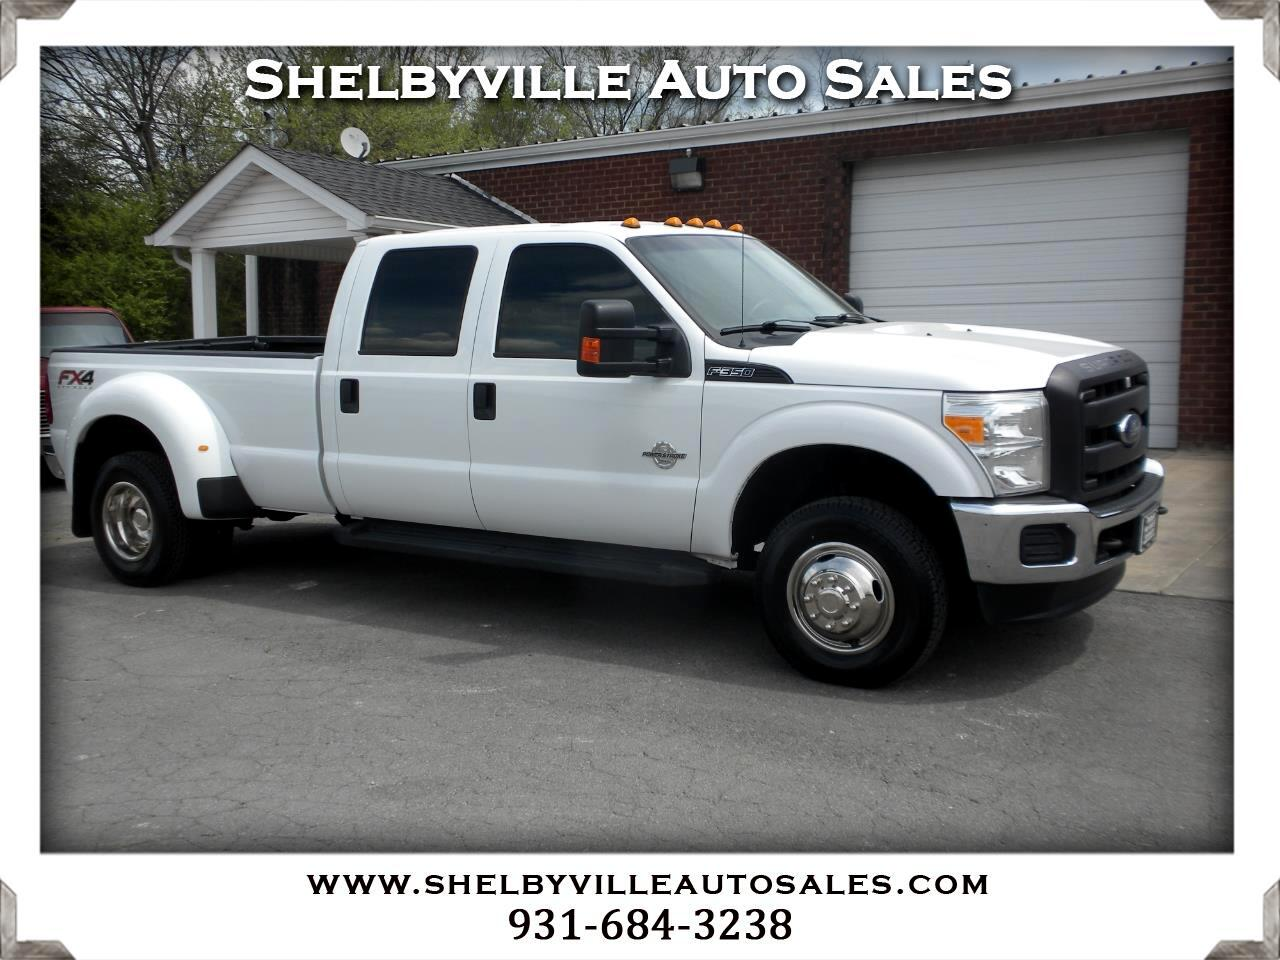 2016 Ford Super Duty F-350 DRW 4X4 Crew Cab XL